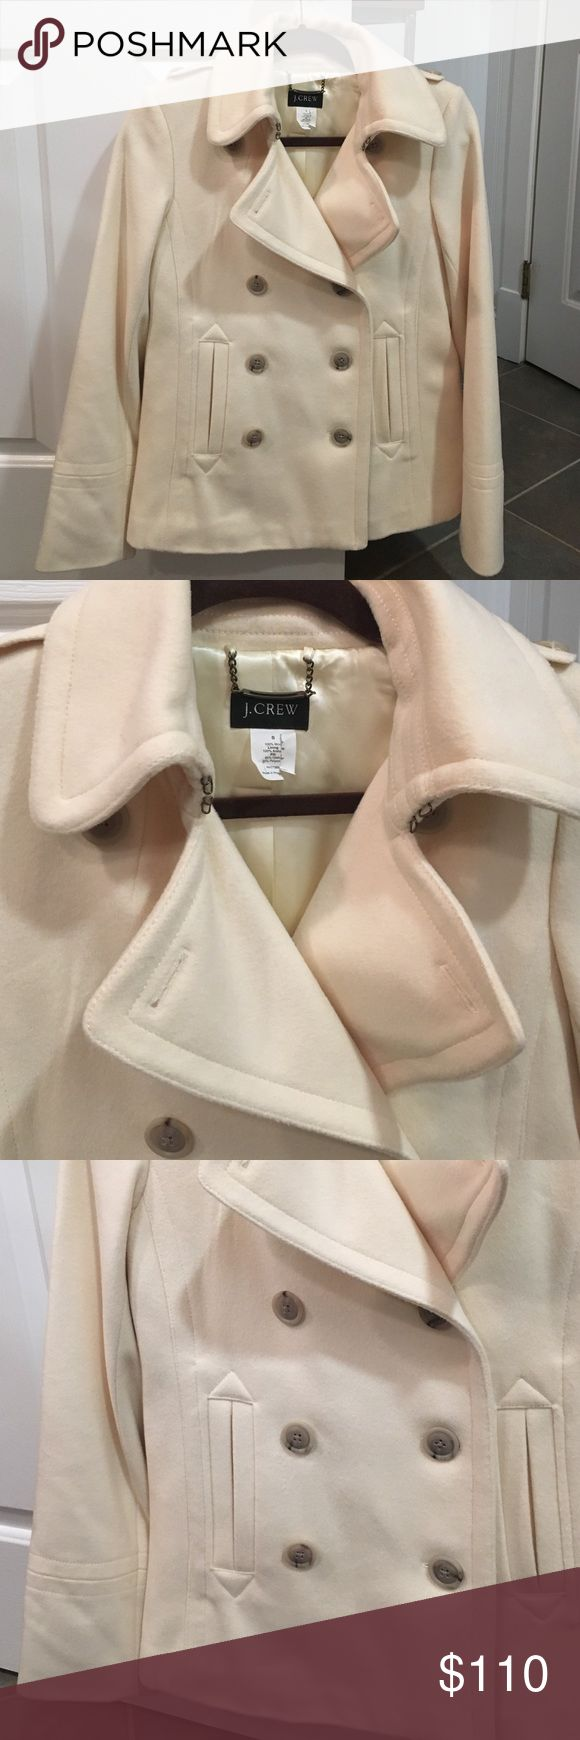 J. Crew cream wool peacoat NWOT J. Crew creaam colored wool peacoat size small. This is few years old and has been stored in a cedar closet. I just forgot I had it. J. Crew Jackets & Coats Pea Coats